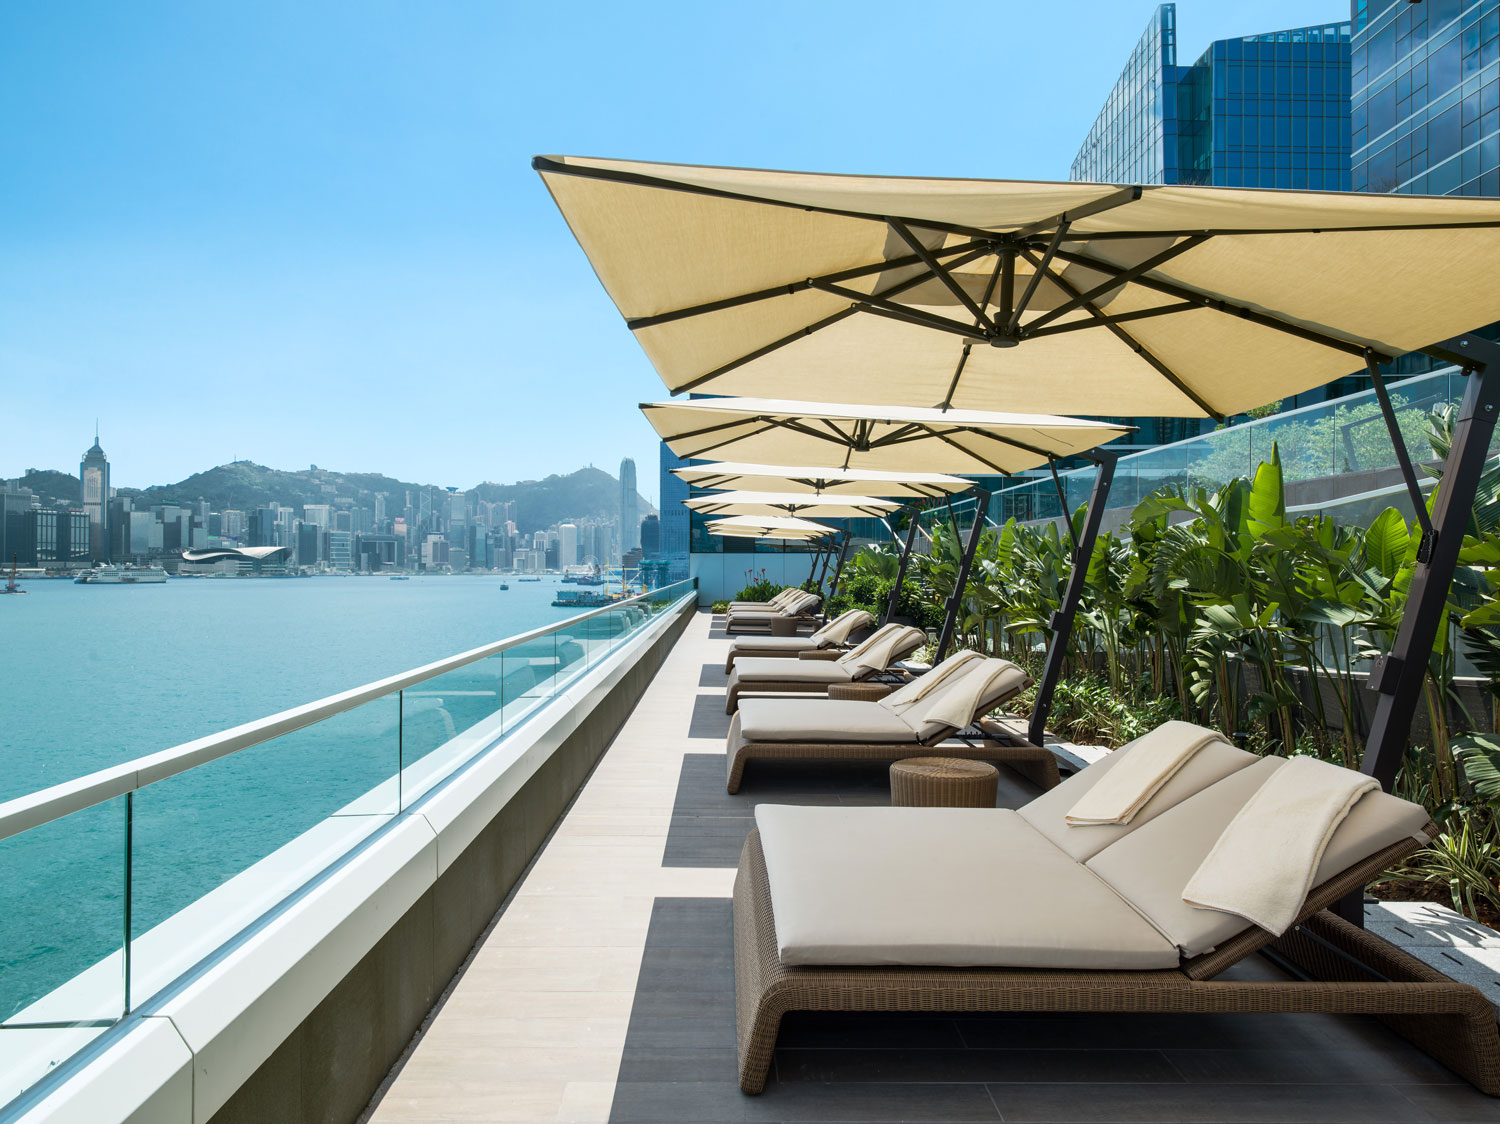 The Kerry Hotel By Andr Fu Opens In Hong Kong Yellowtrace